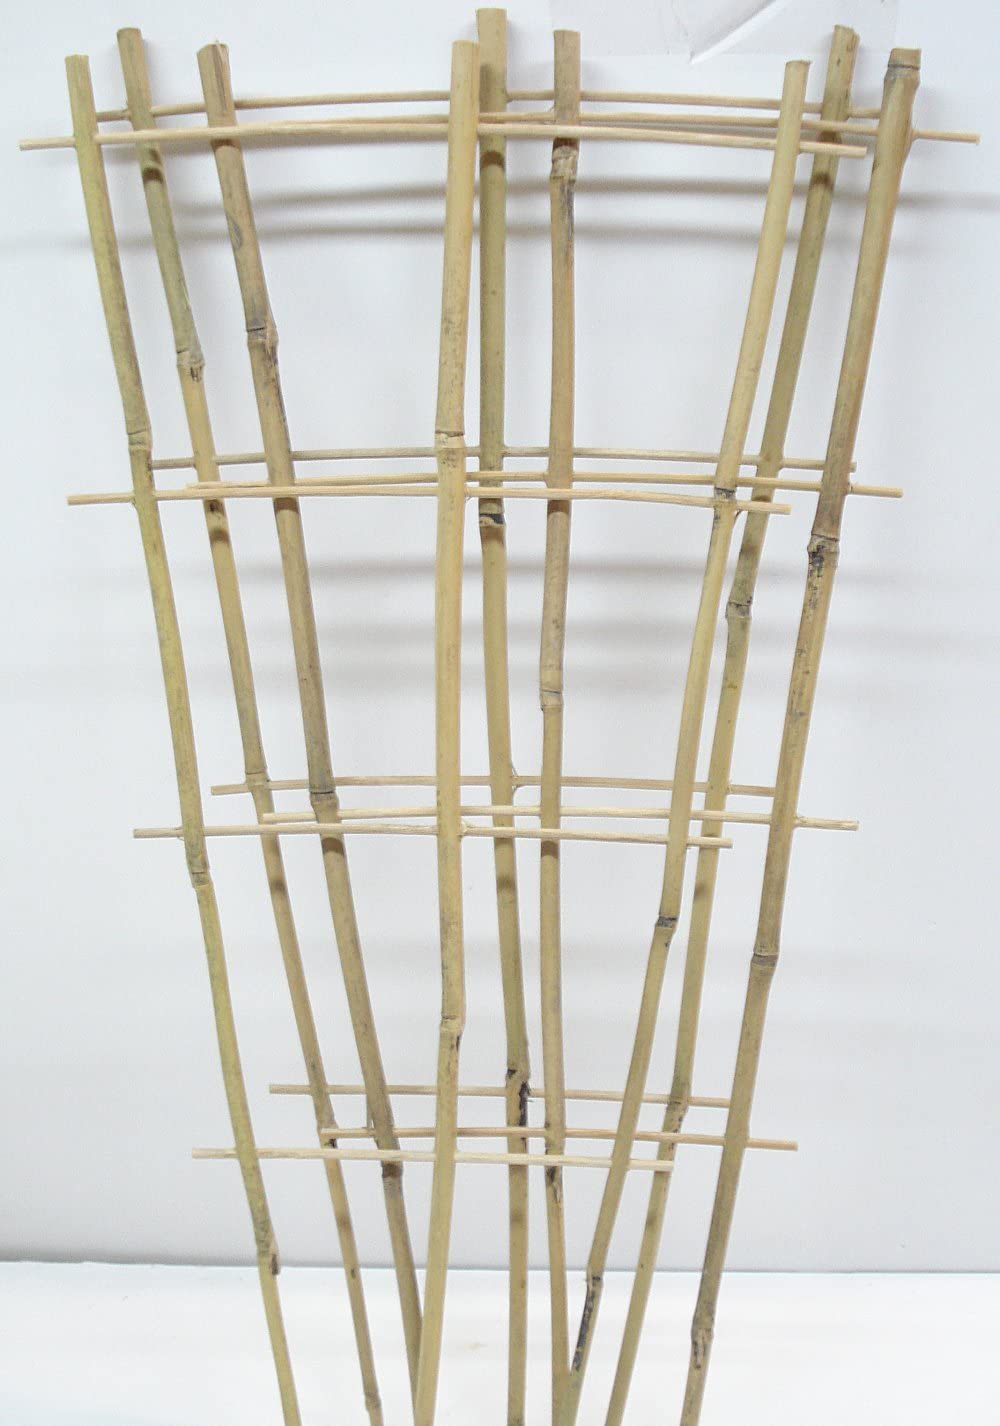 Natural Color Bamboo Trellis 24 inches Tall - Quantity 3